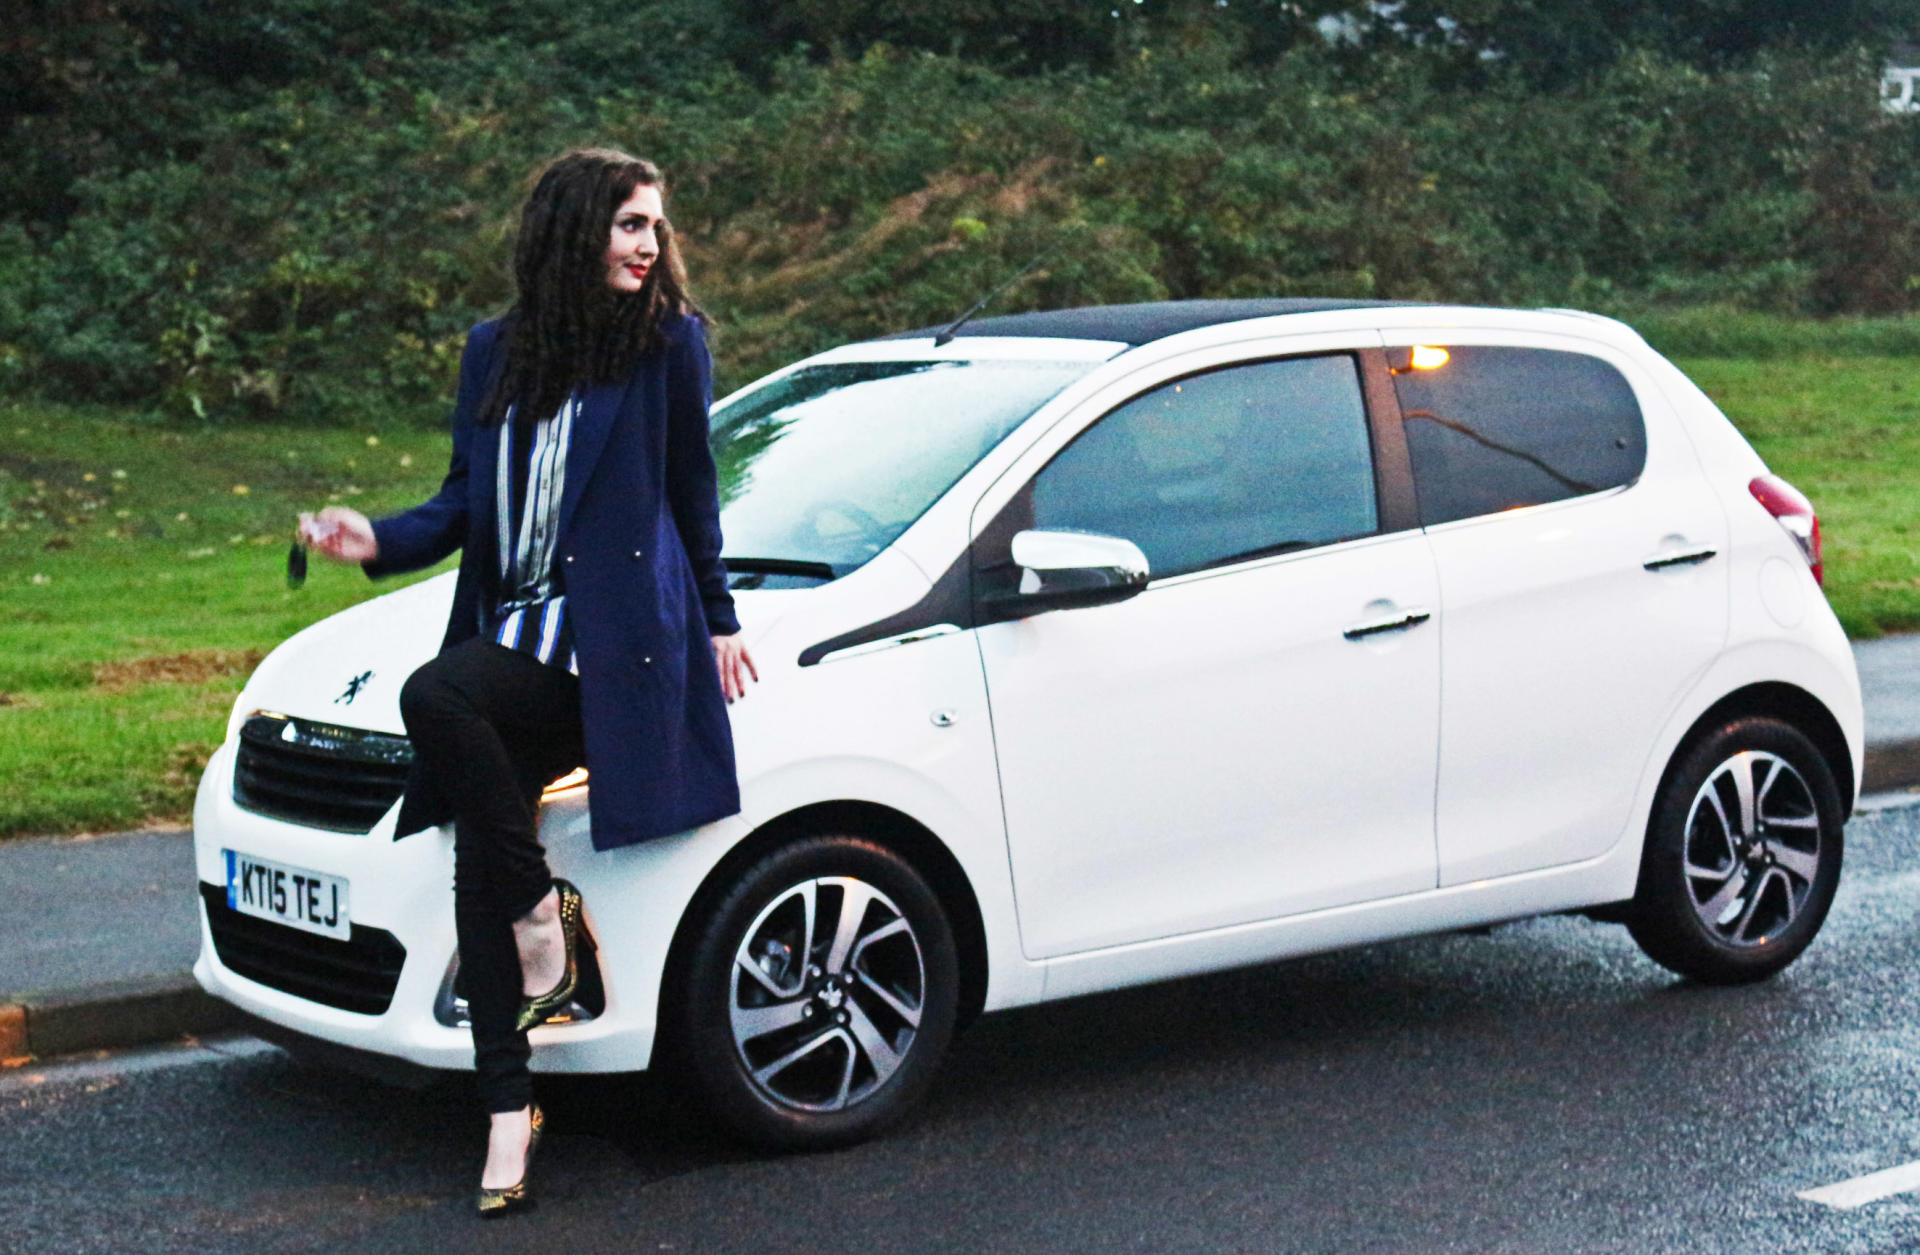 peugeot 108 | car review | lifestyle blogger lily kitten